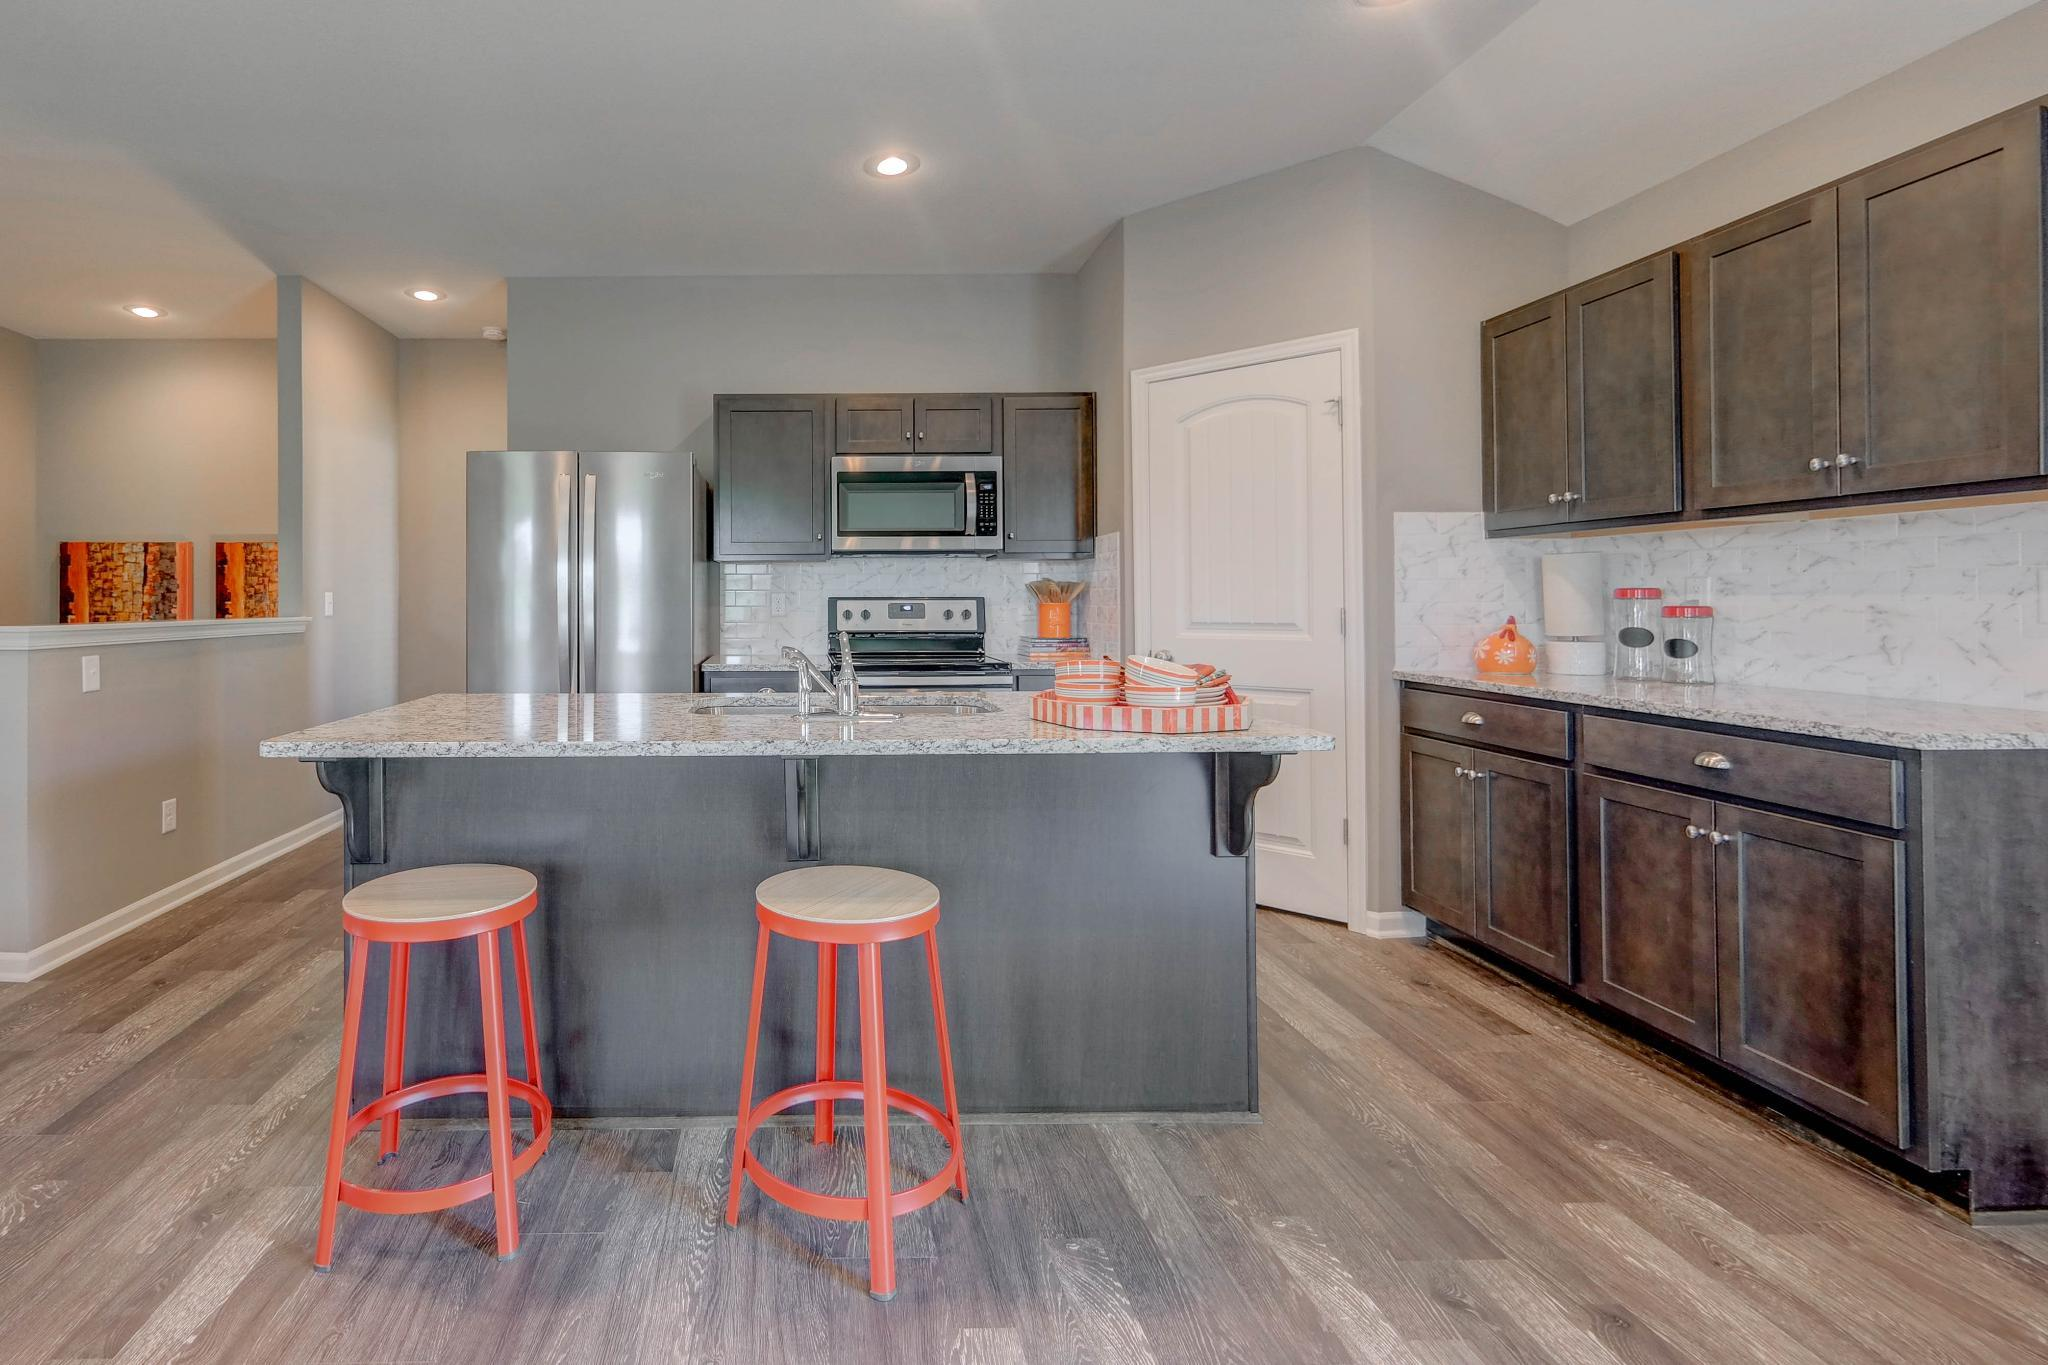 Kitchen featured in the Roanoke By Summit Homes in Kansas City, MO